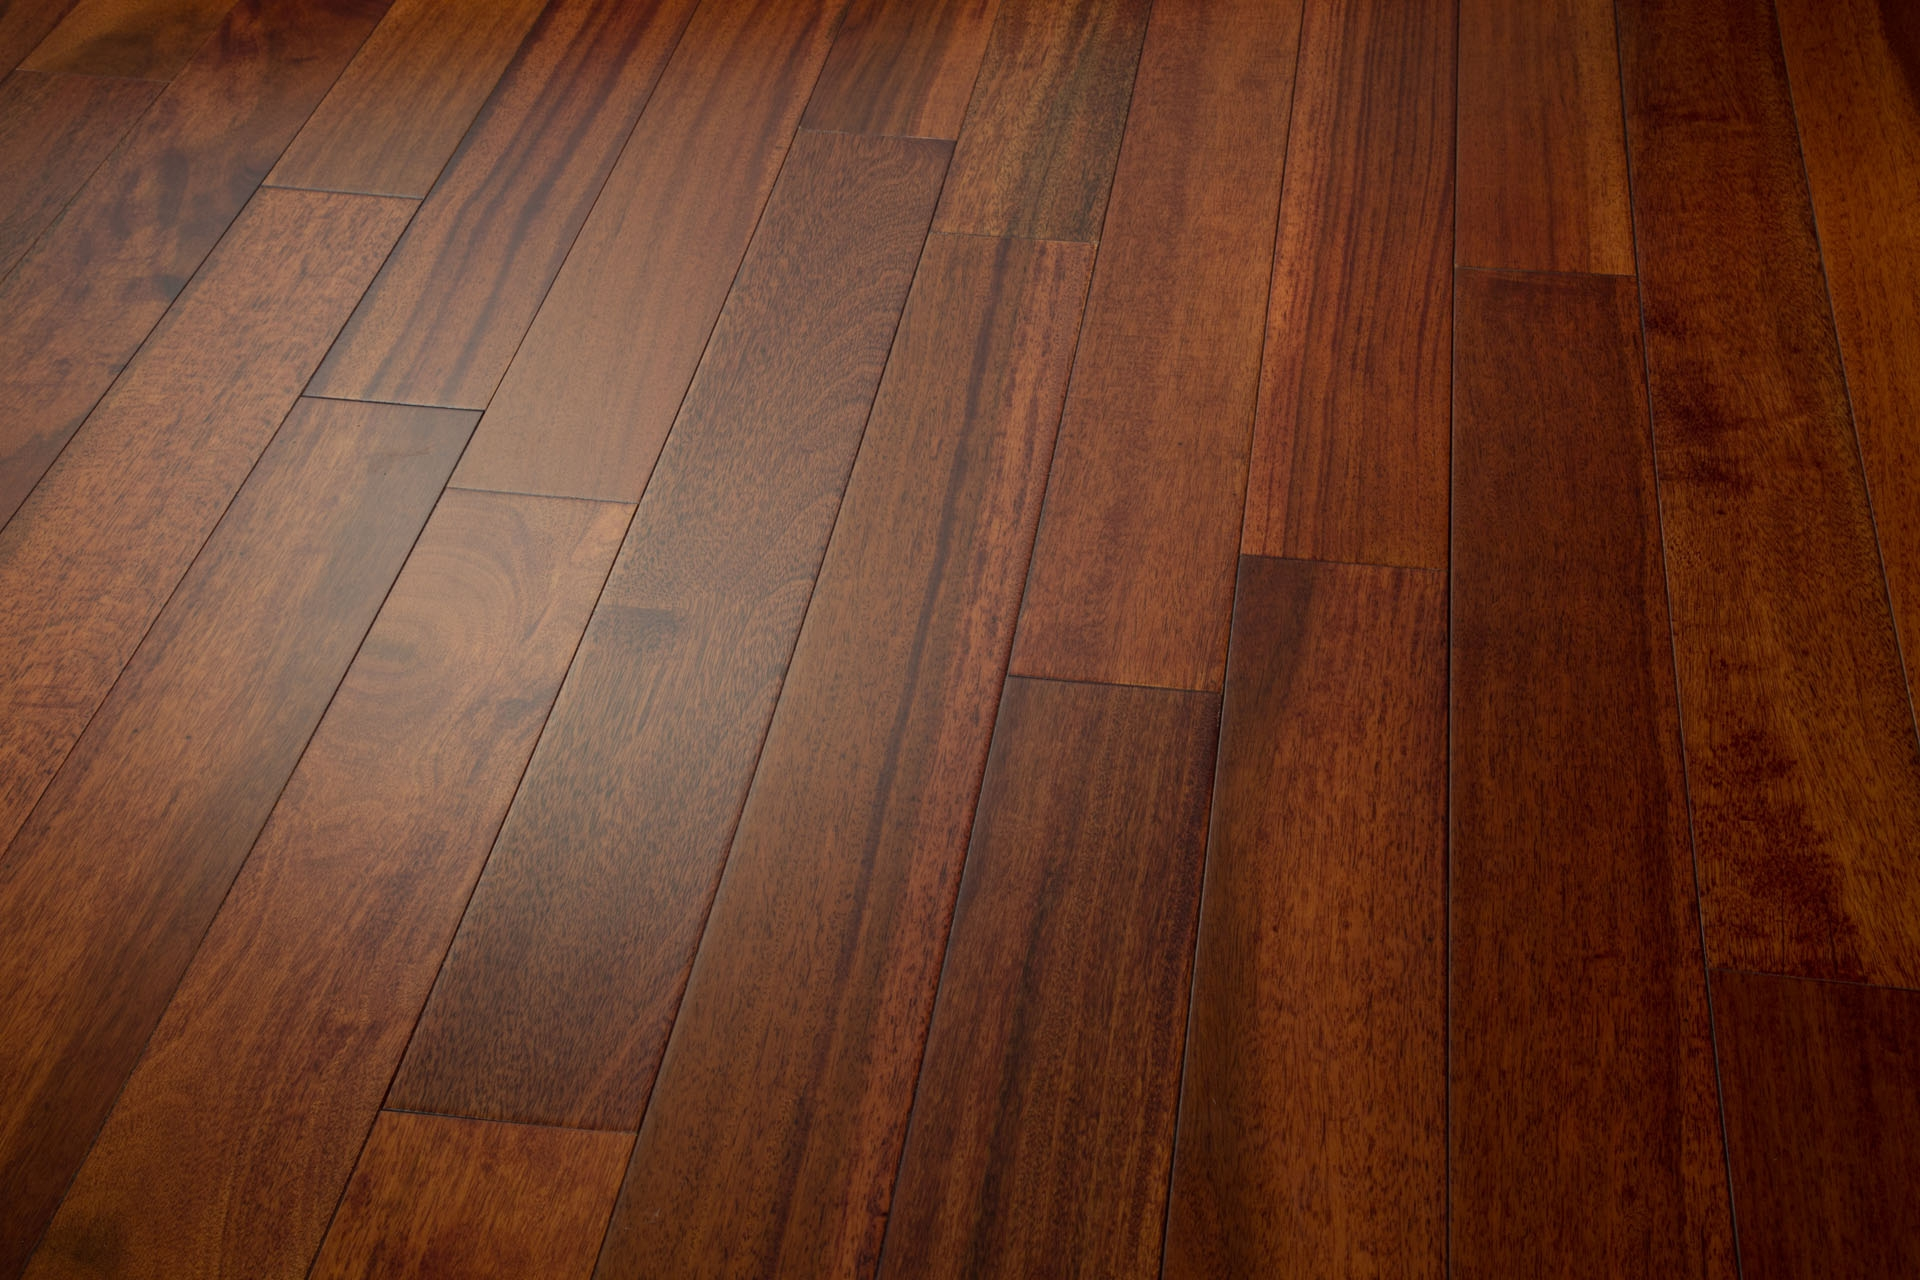 Elegance Exotic Wood Flooring Harvest Maple